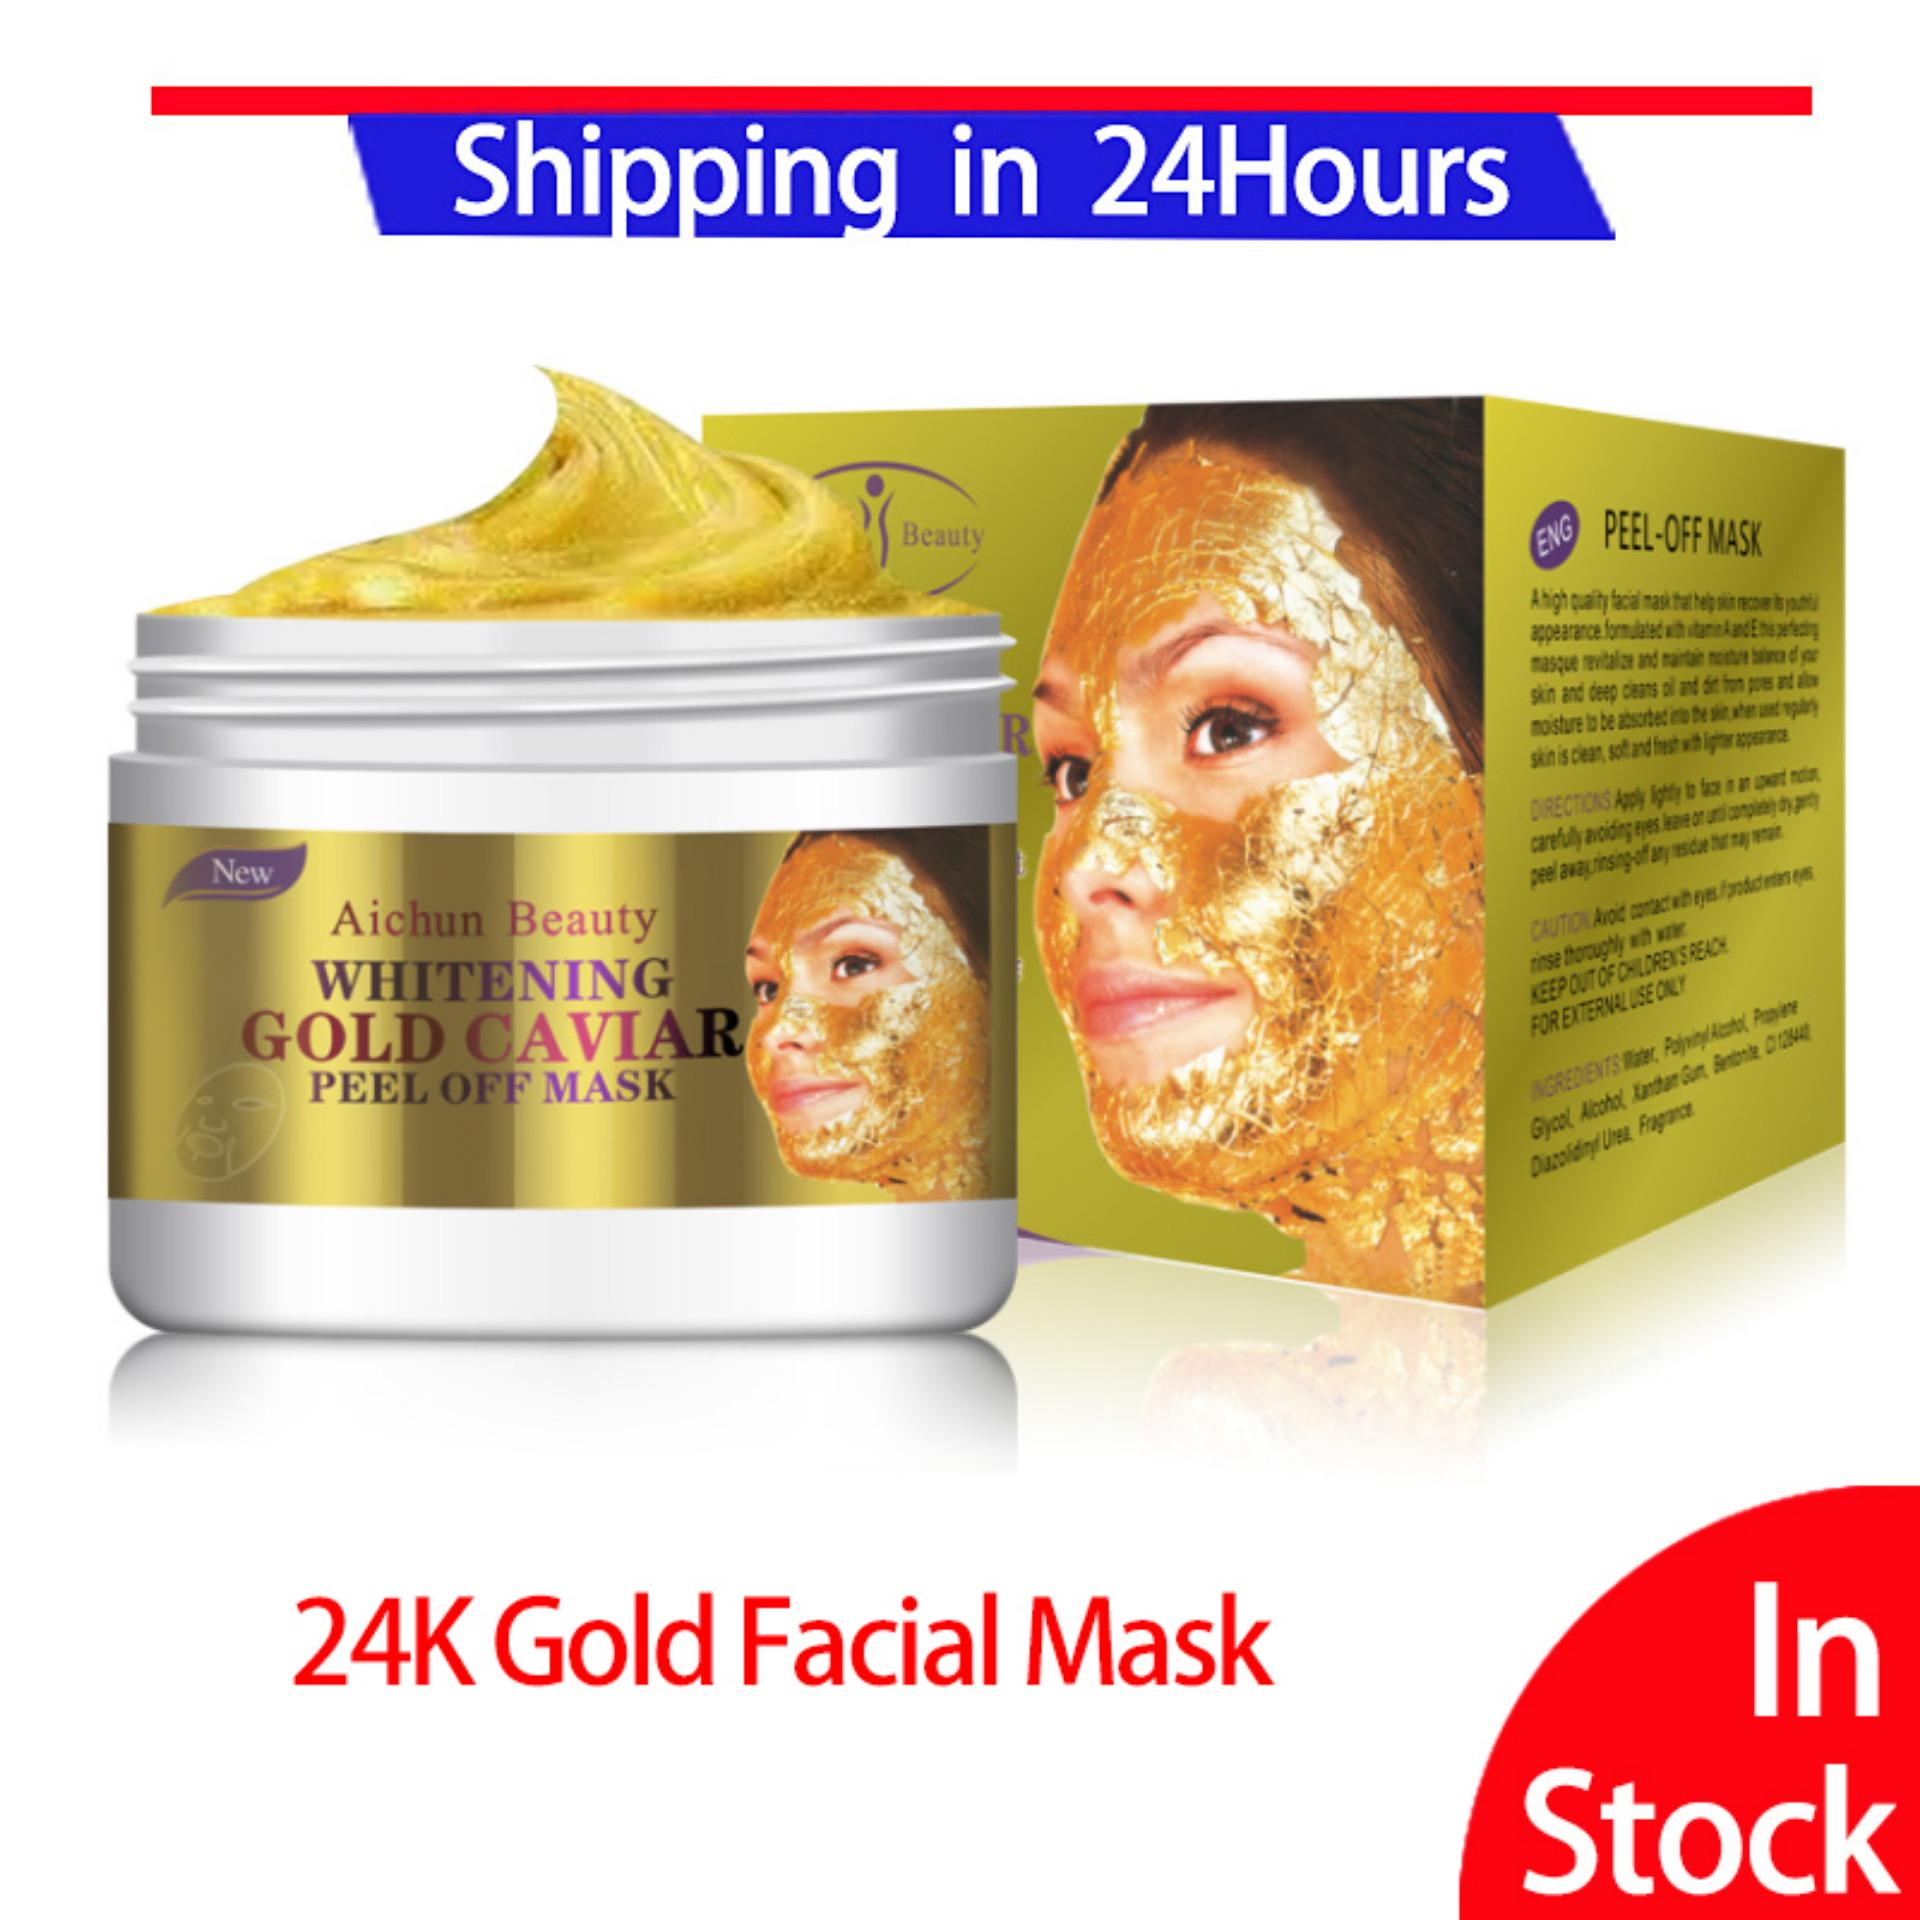 24K Gold Facial Tearing Mask Whitening Pores Cleaning Moisturizing Gold Caviar Peel Off Mask - intl